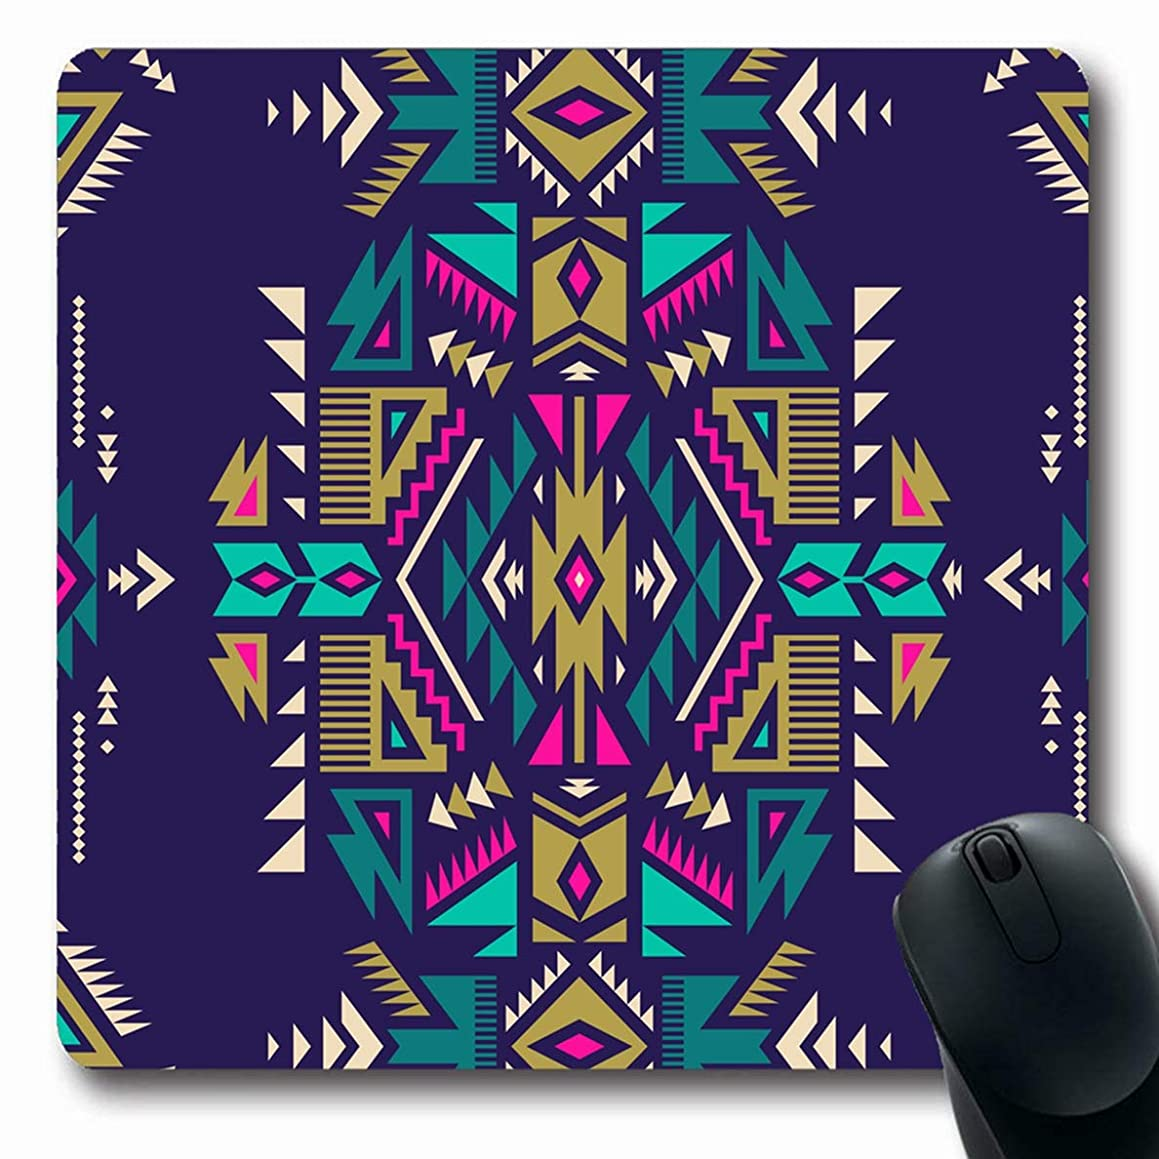 Ahawoso Mousepads Orange Jacquard Dark Color Tribal Navajo Abstract Cultural African Pink Mexican Peru American Arabic Oblong Shape 7.9 x 9.5 Inches Non-Slip Gaming Mouse Pad Rubber Oblong Mat